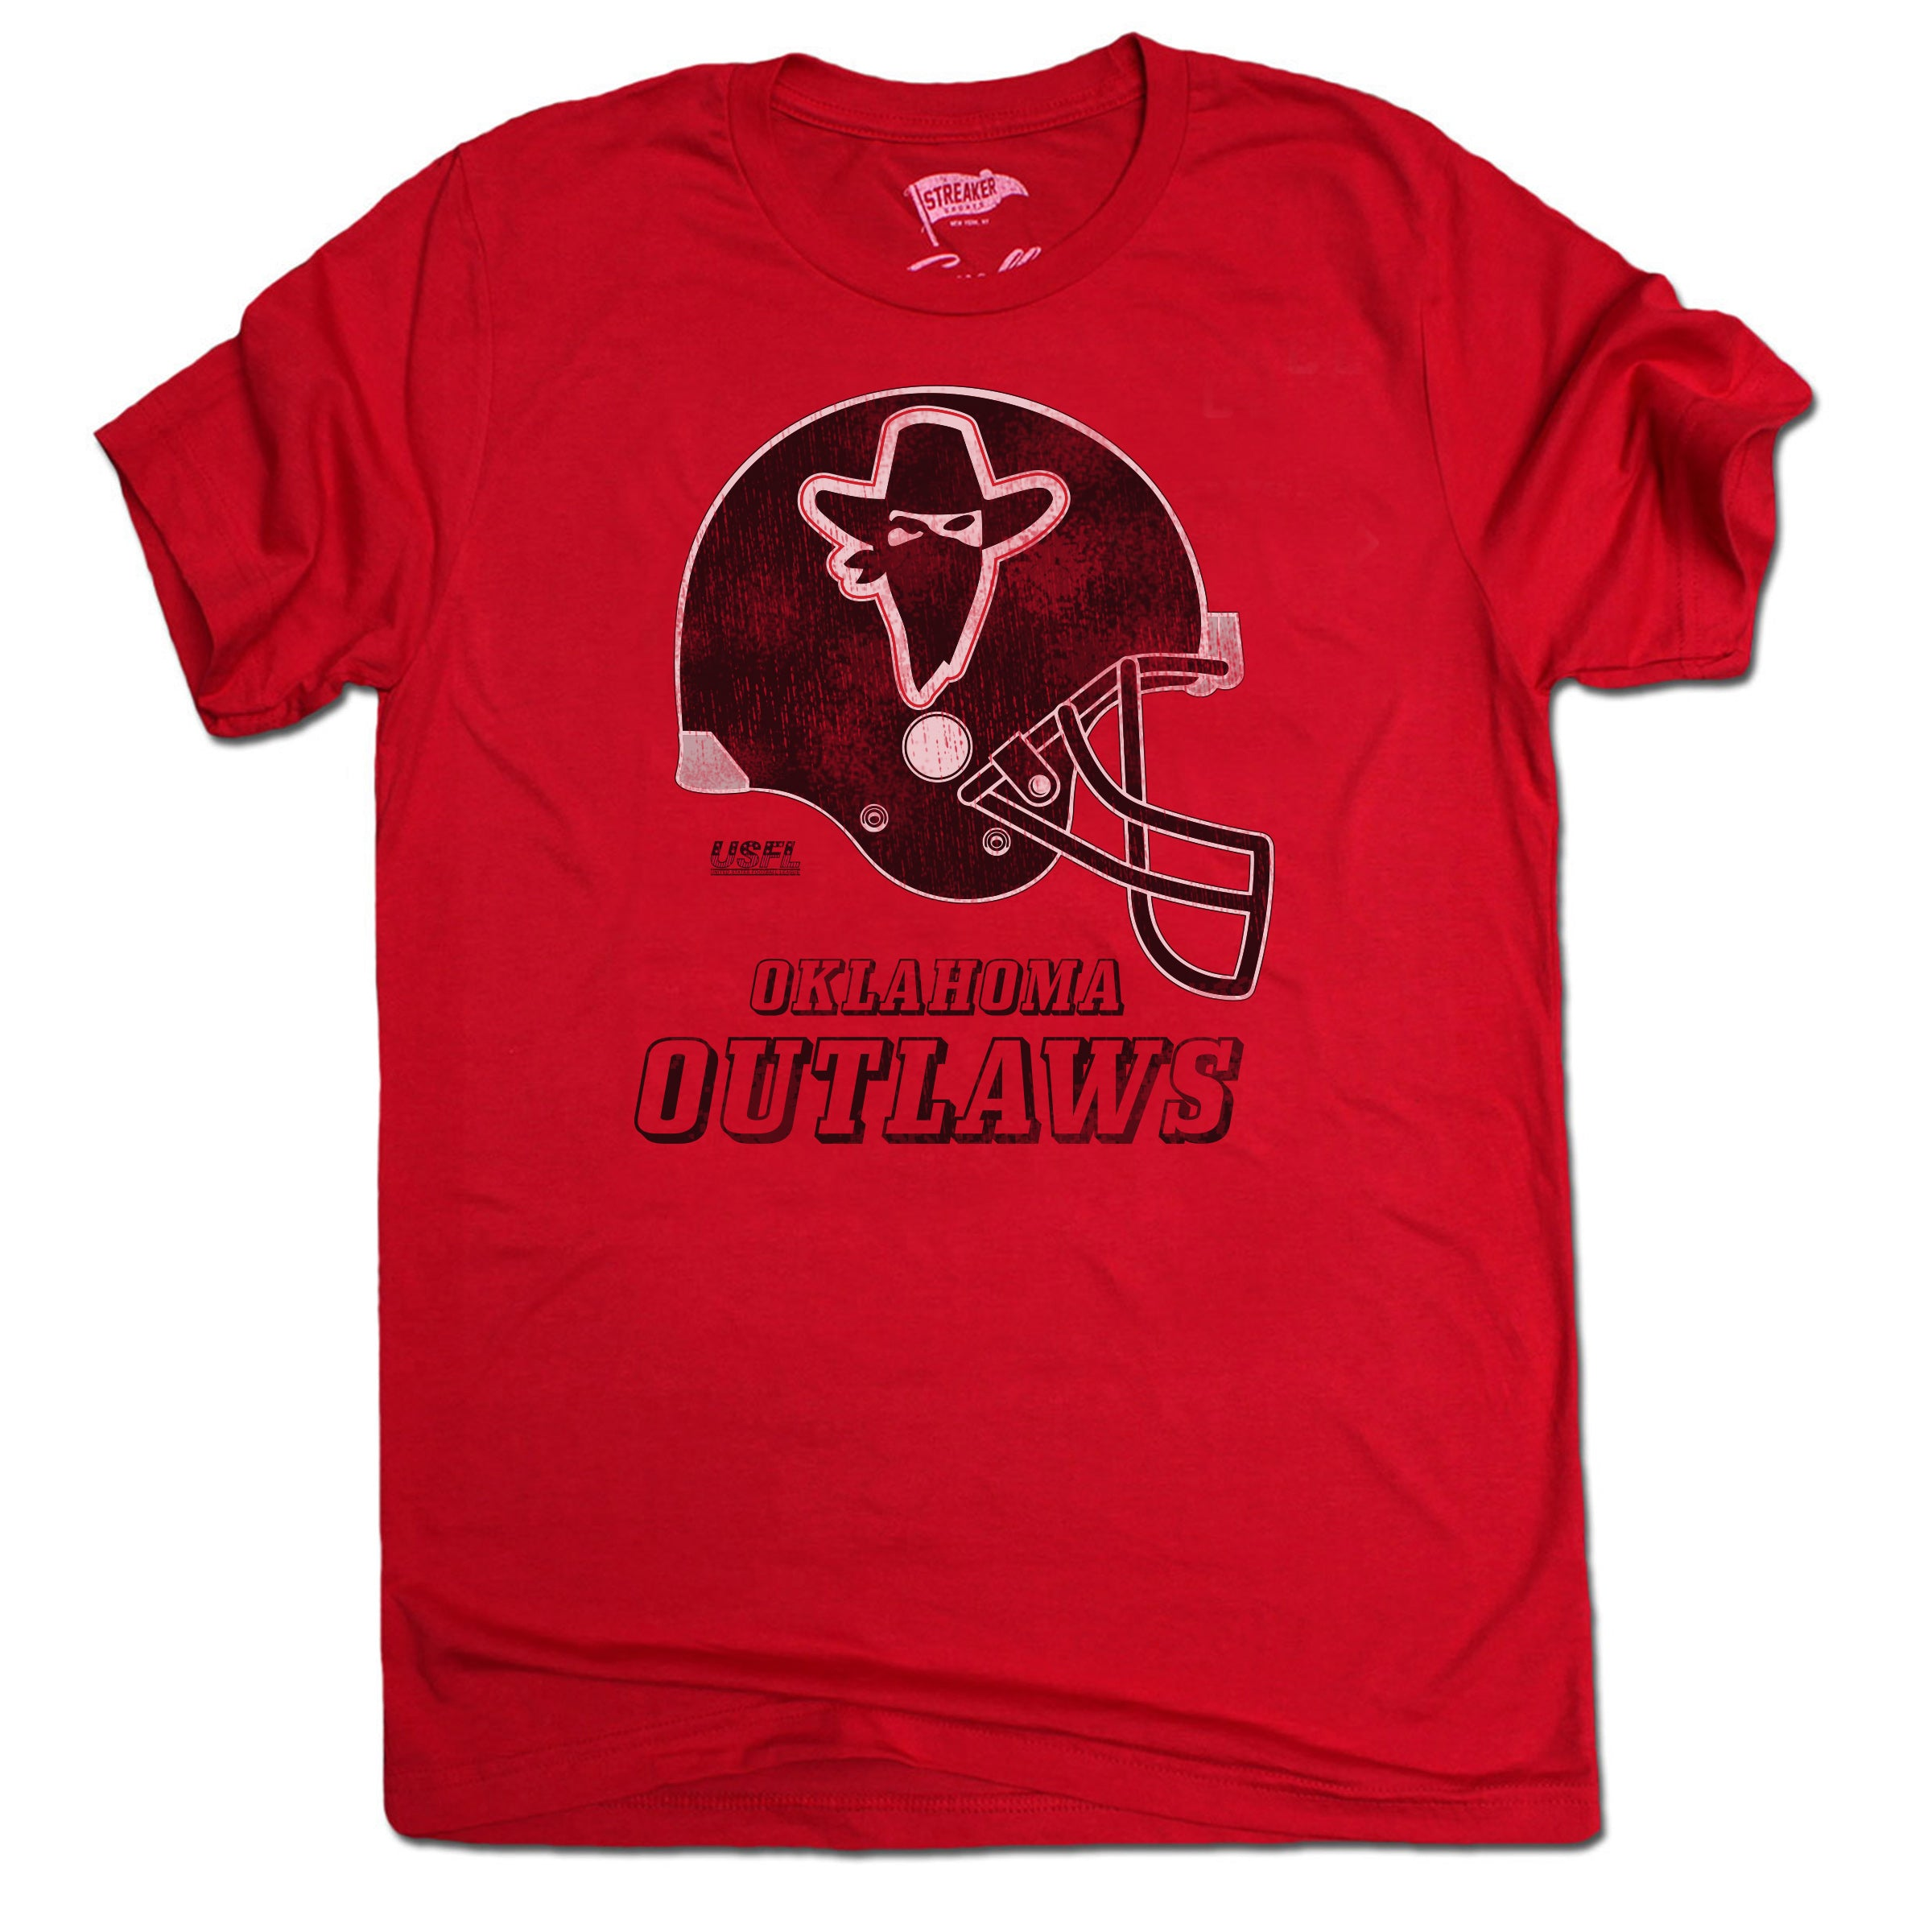 1984 Oklahoma Outlaws Helmet Tee - Streaker Sports